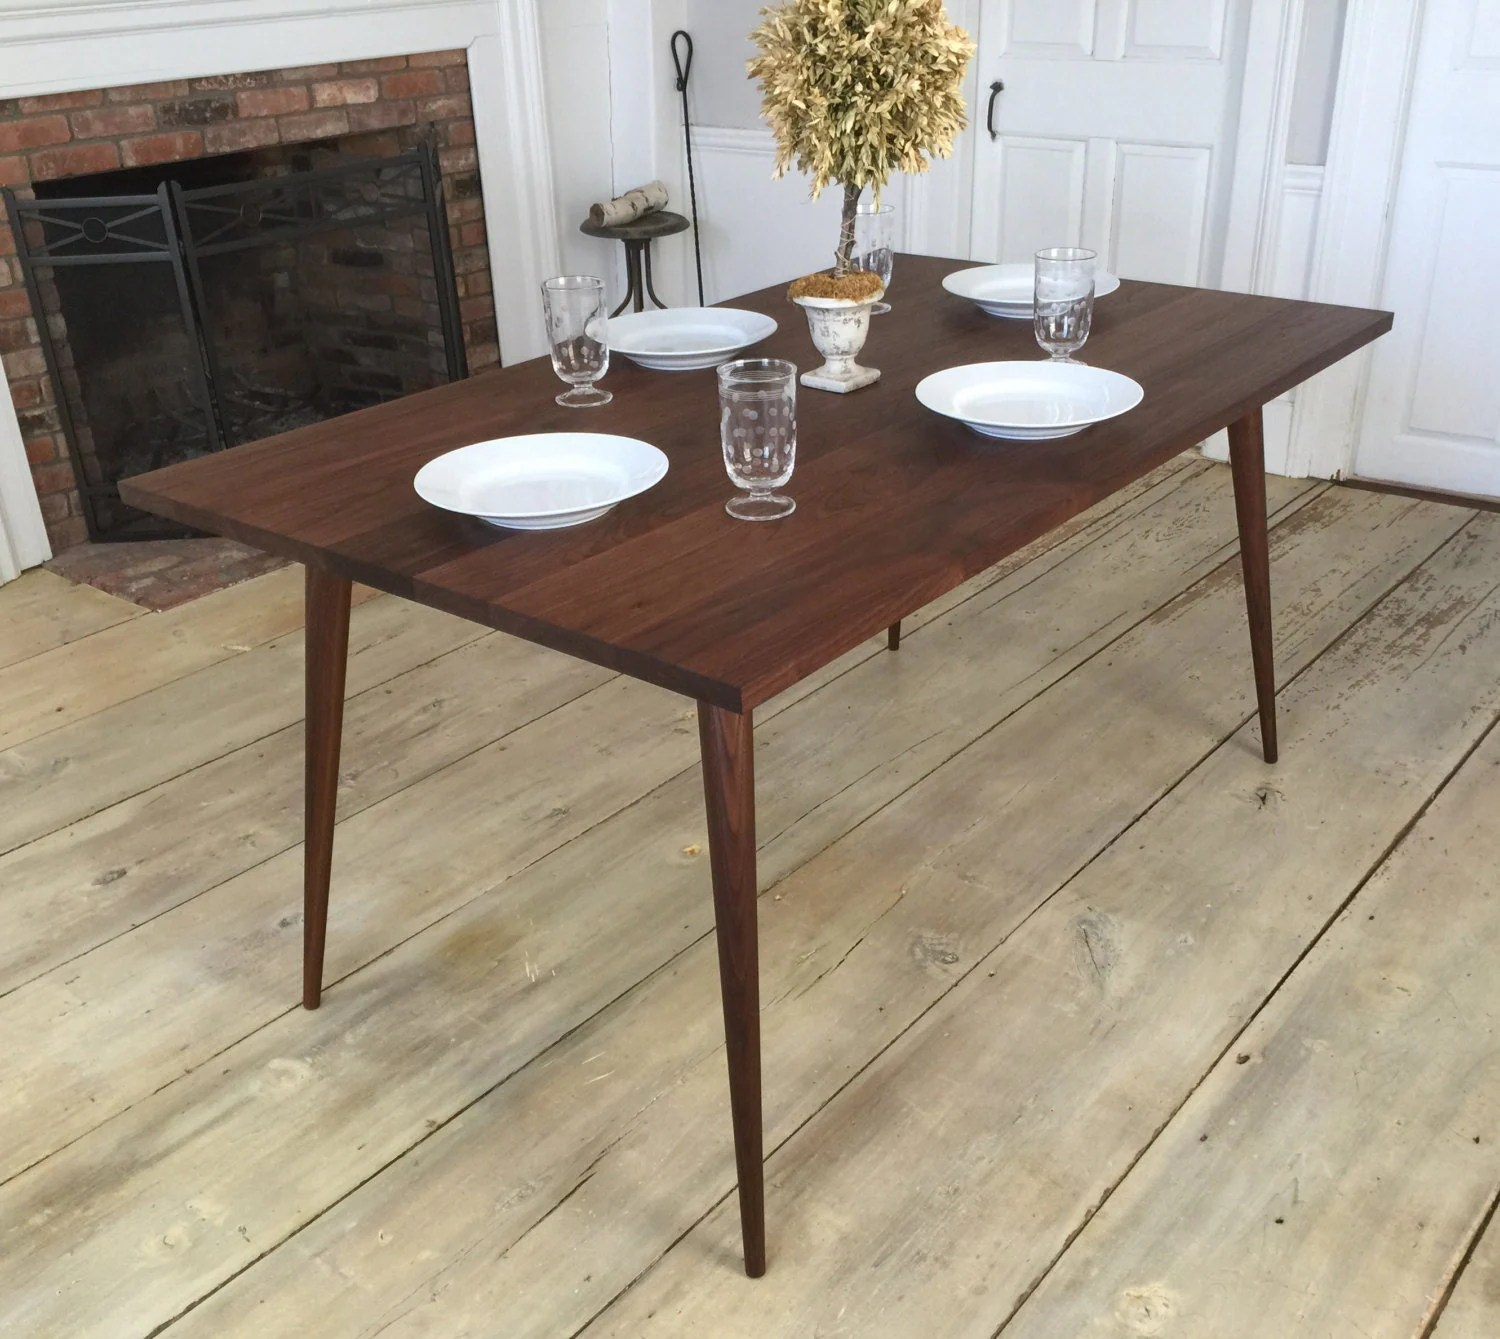 black walnut dining table mid century mid century kitchen table Black walnut dining table mid century modern featuring tapered wood legs zoom